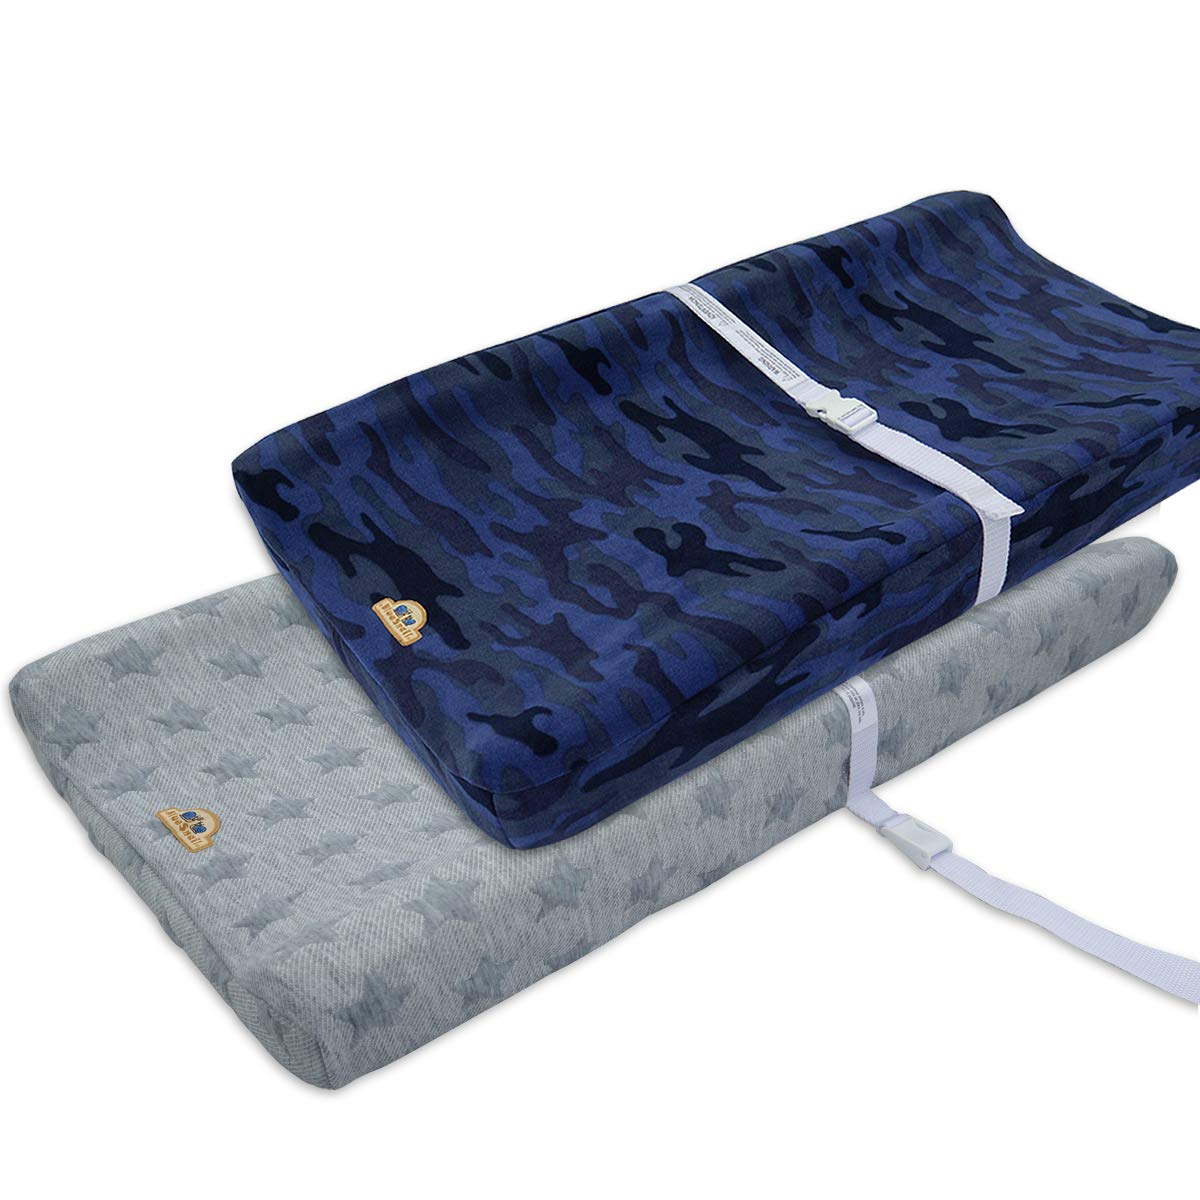 BlueSnail Plush Super Soft and Comfy Changing Pad Cover for Baby 2-Pack (Grey)